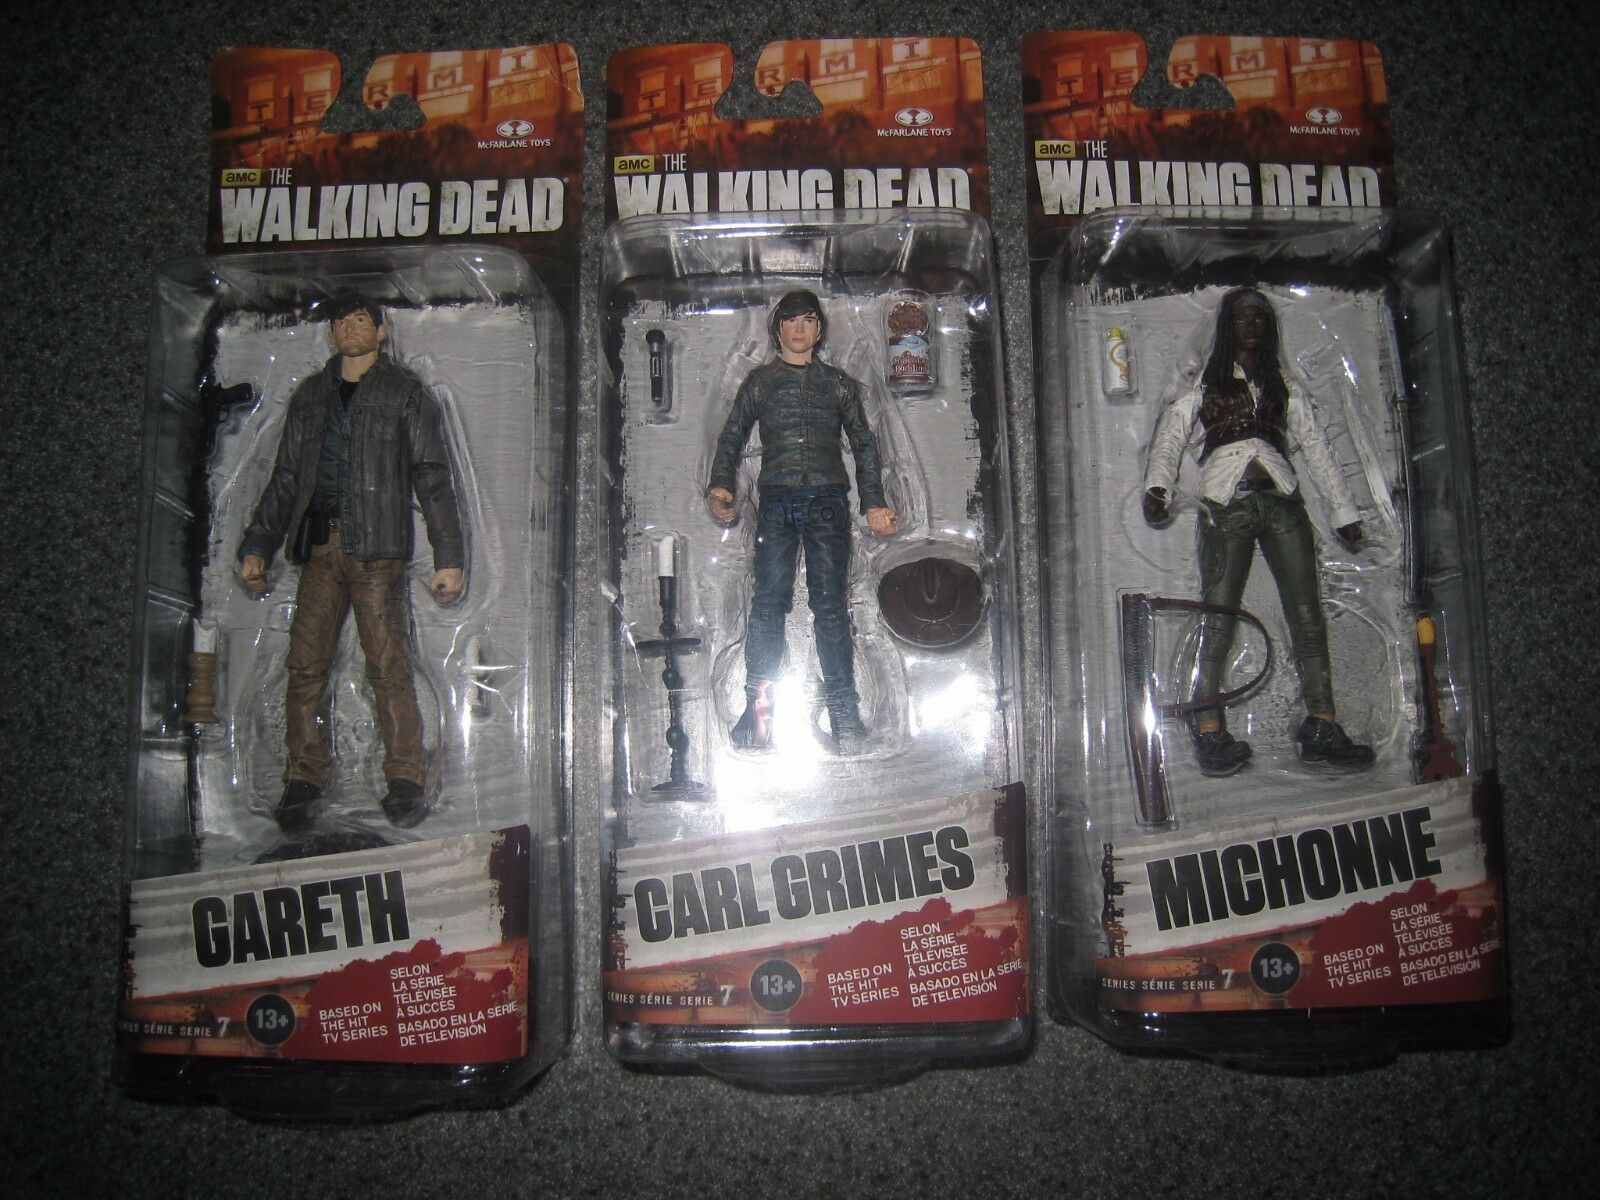 NIP AMC THE WALKING DEAD GARETH CARL GRIMES MICHONNE SERIES 7 FIGURES